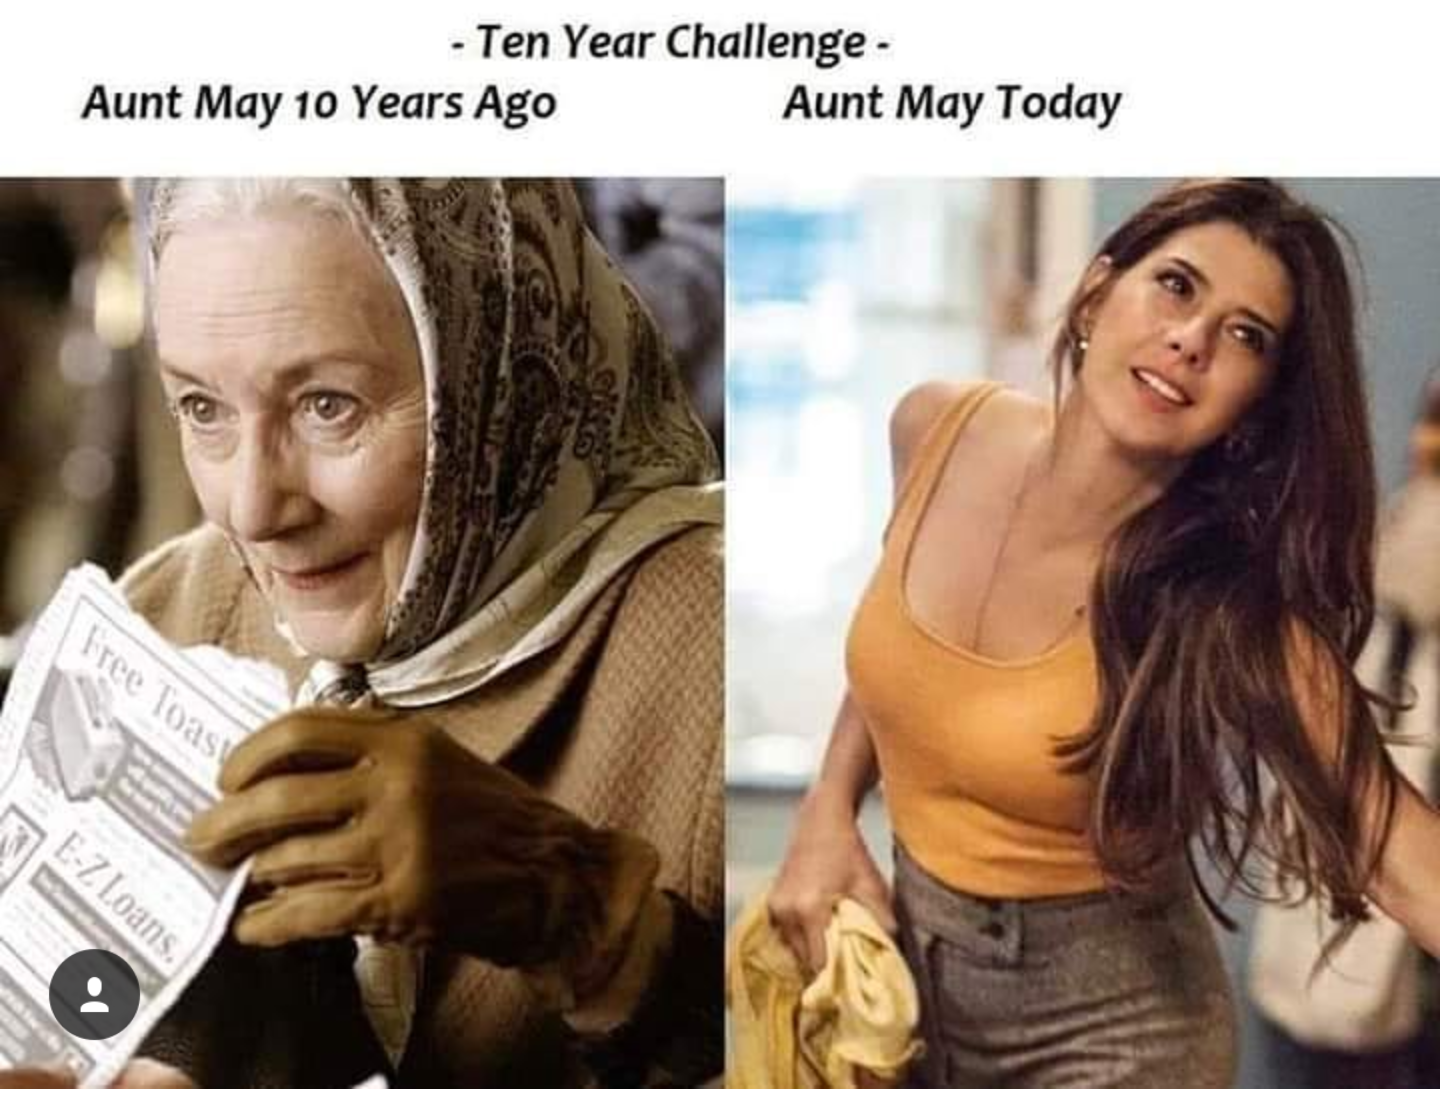 Can you beat Aunt May with your #30YearsChallenge